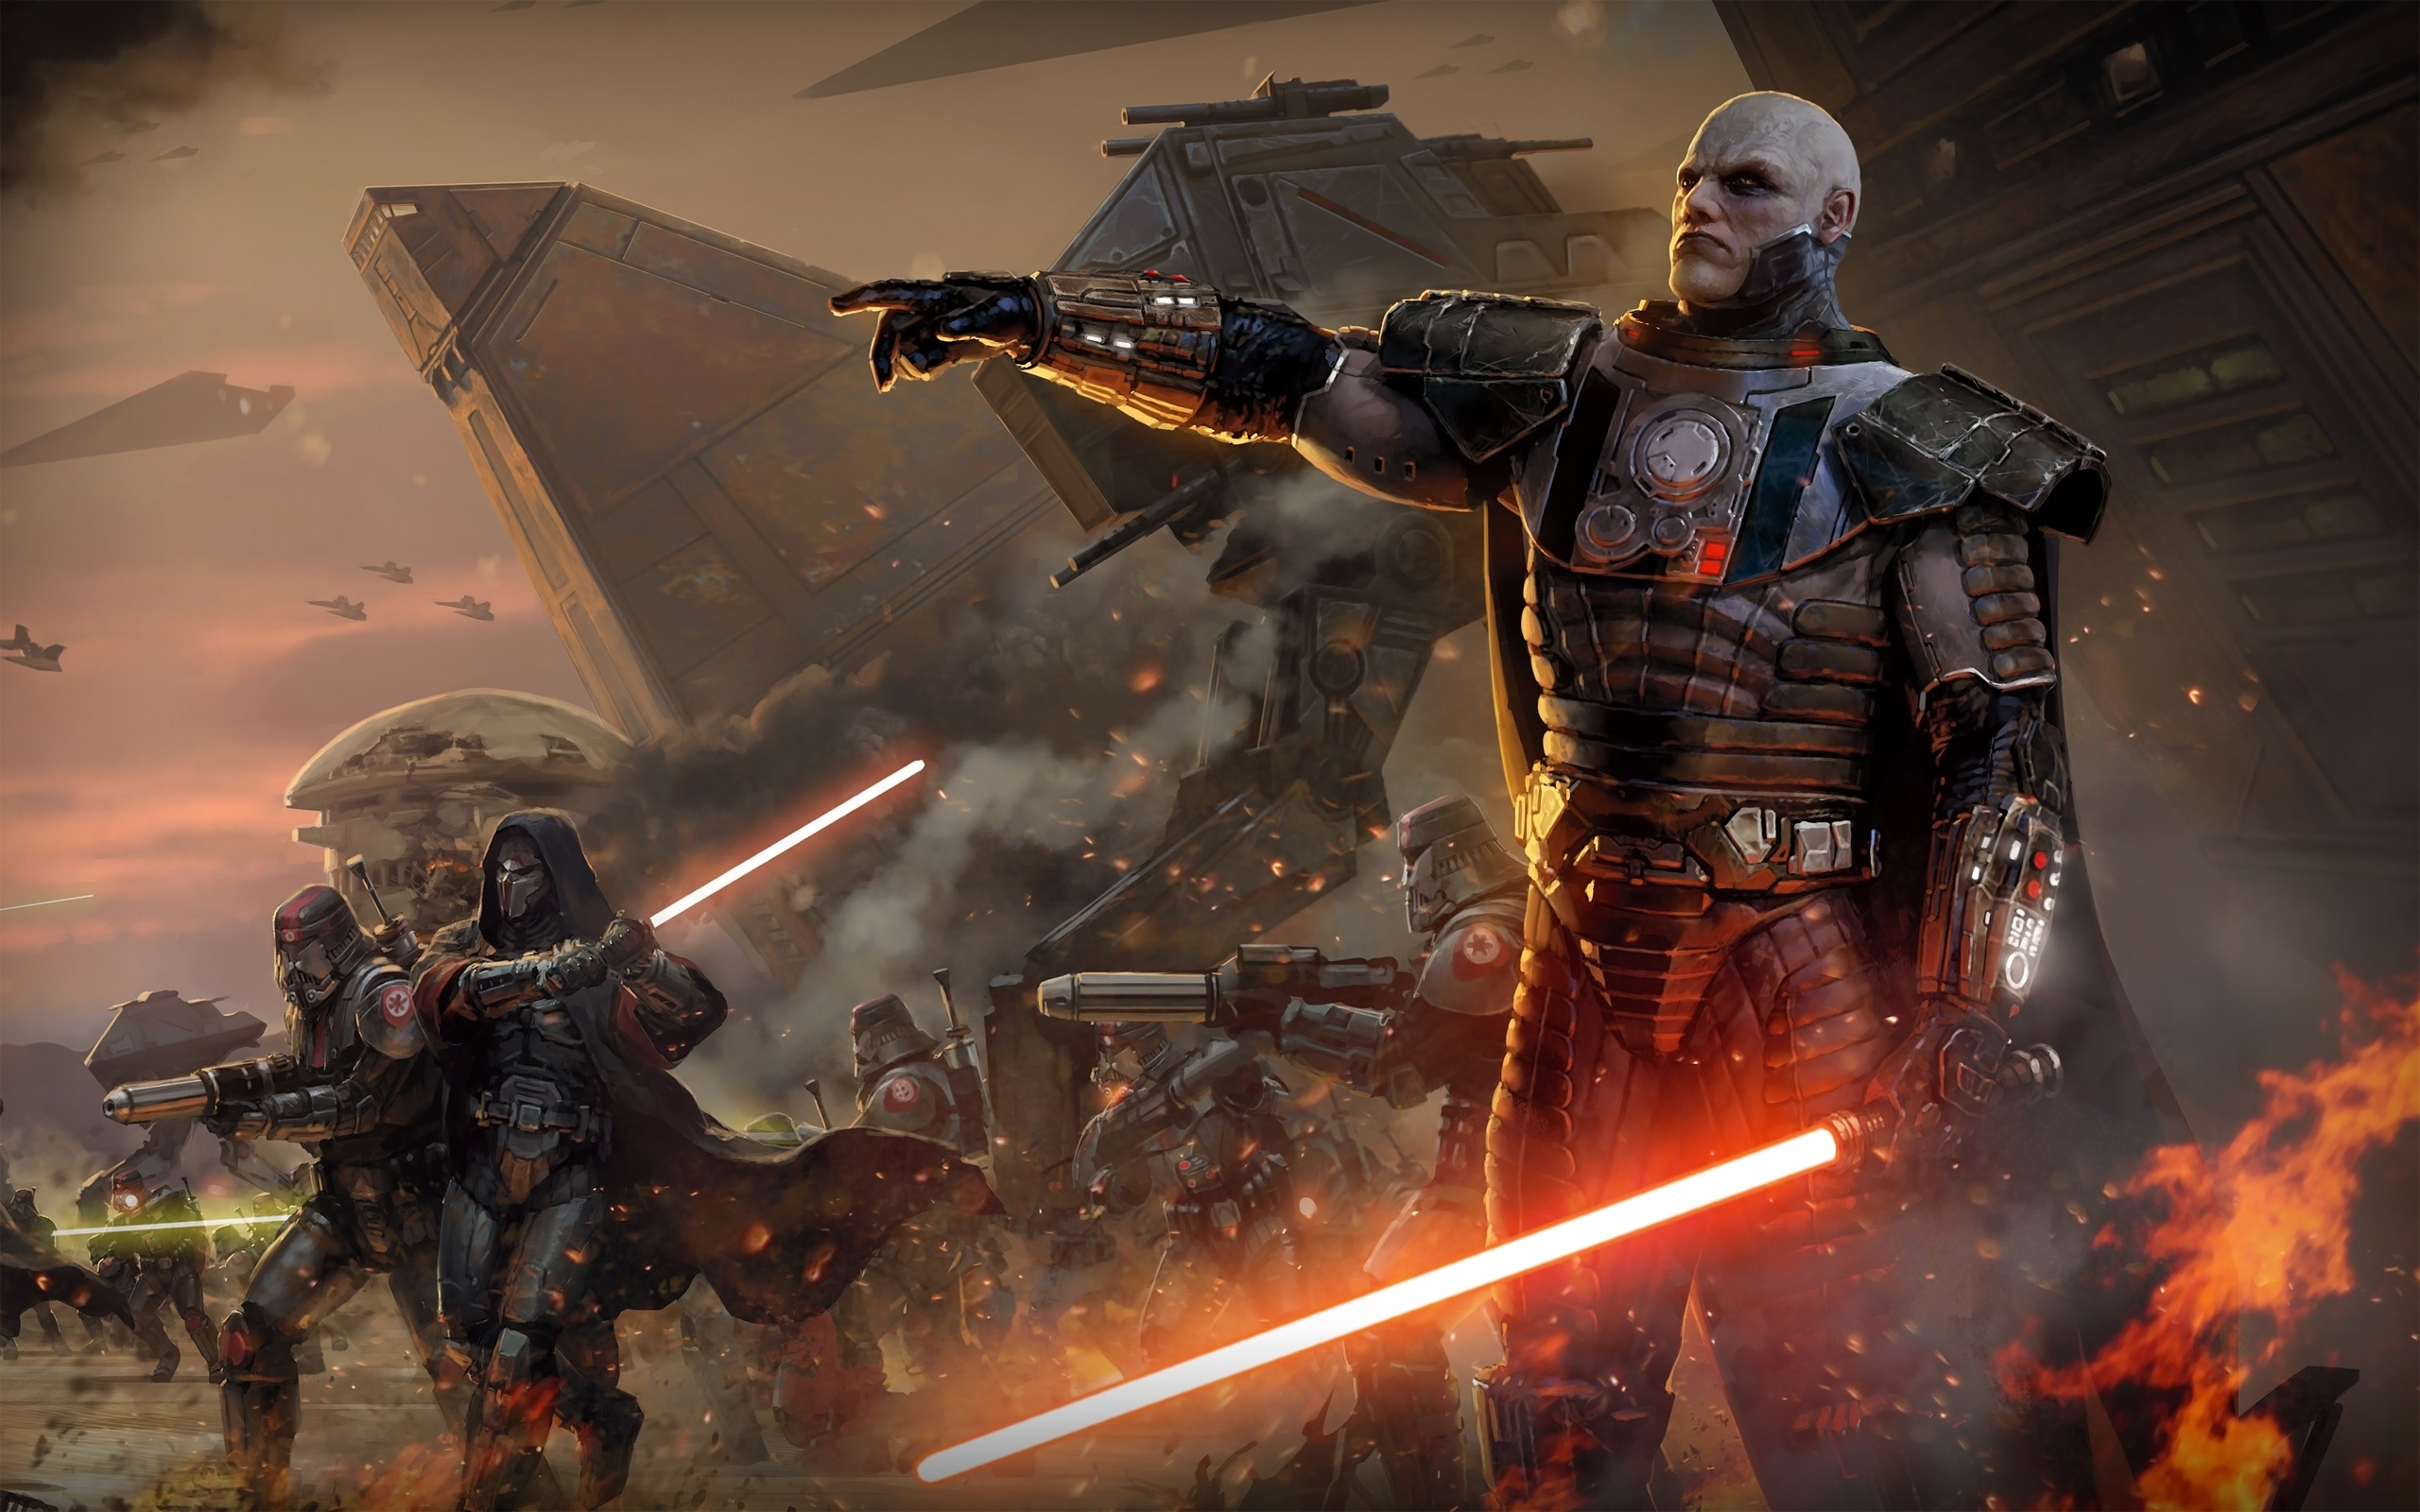 star wars: the old republic full hd fond d'écran and arrière-plan